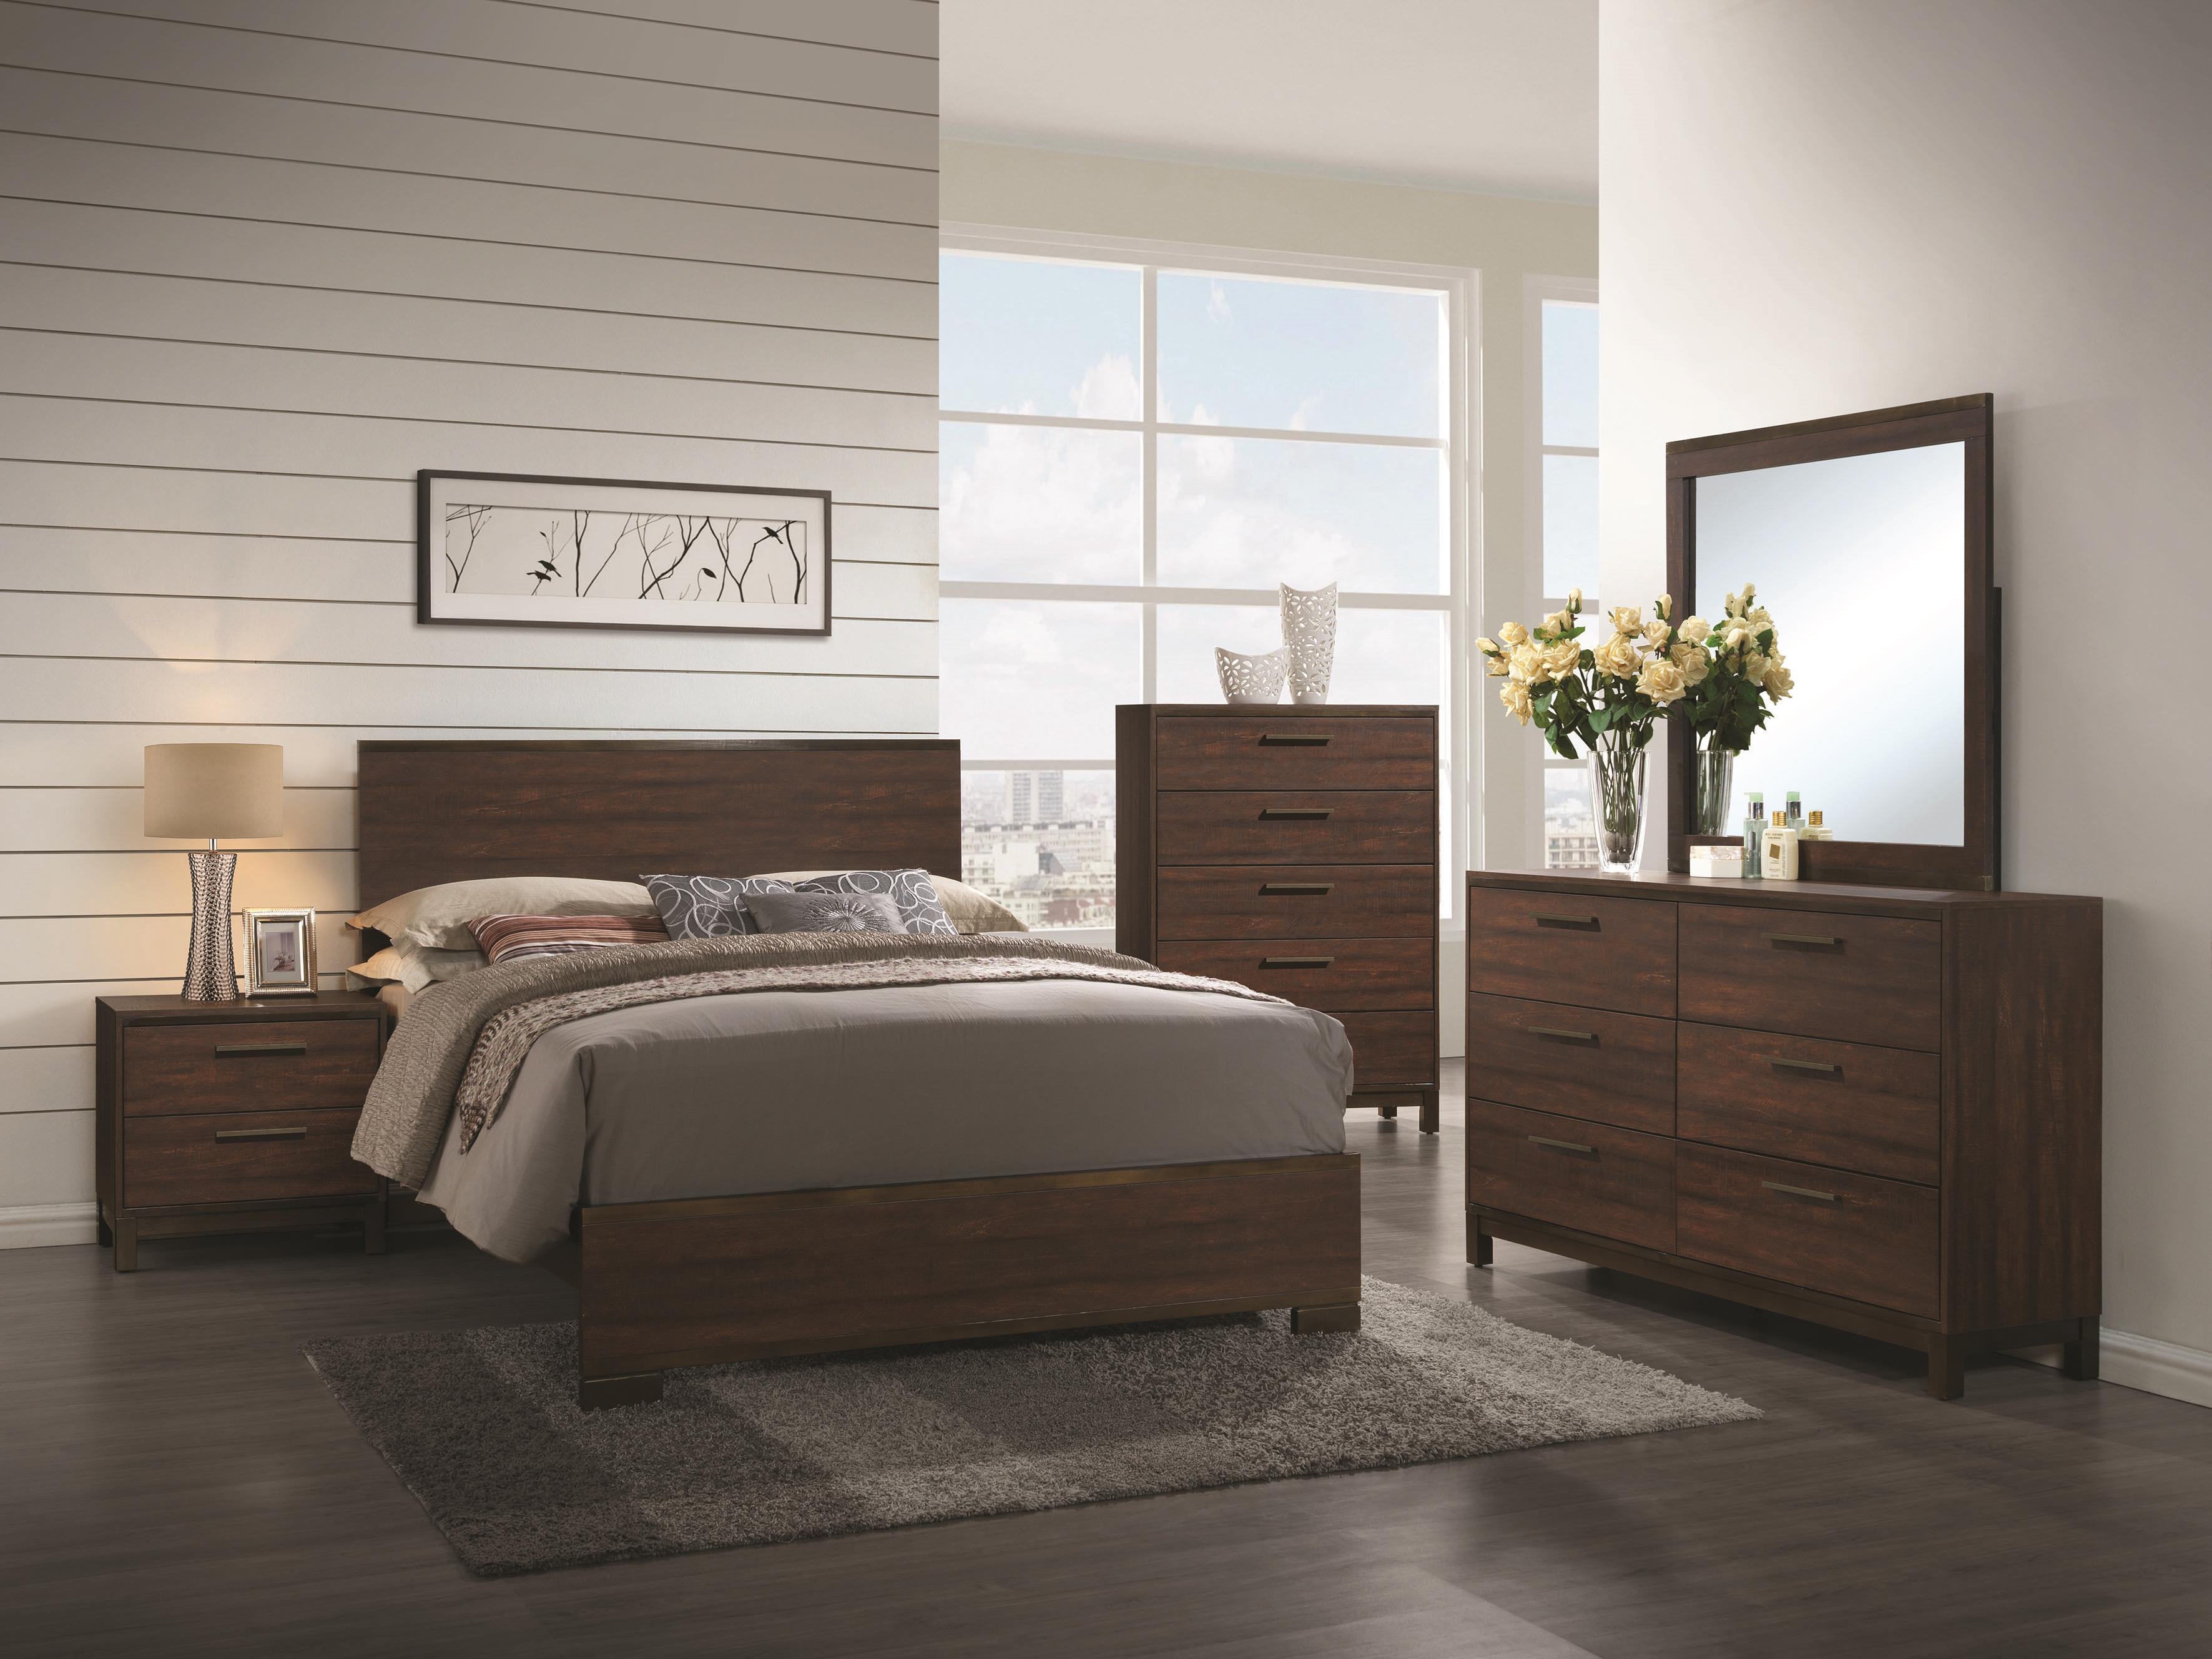 Coaster Edmonton California King Bedroom Group - Item Number: 2043 CK Bedroom Group 1